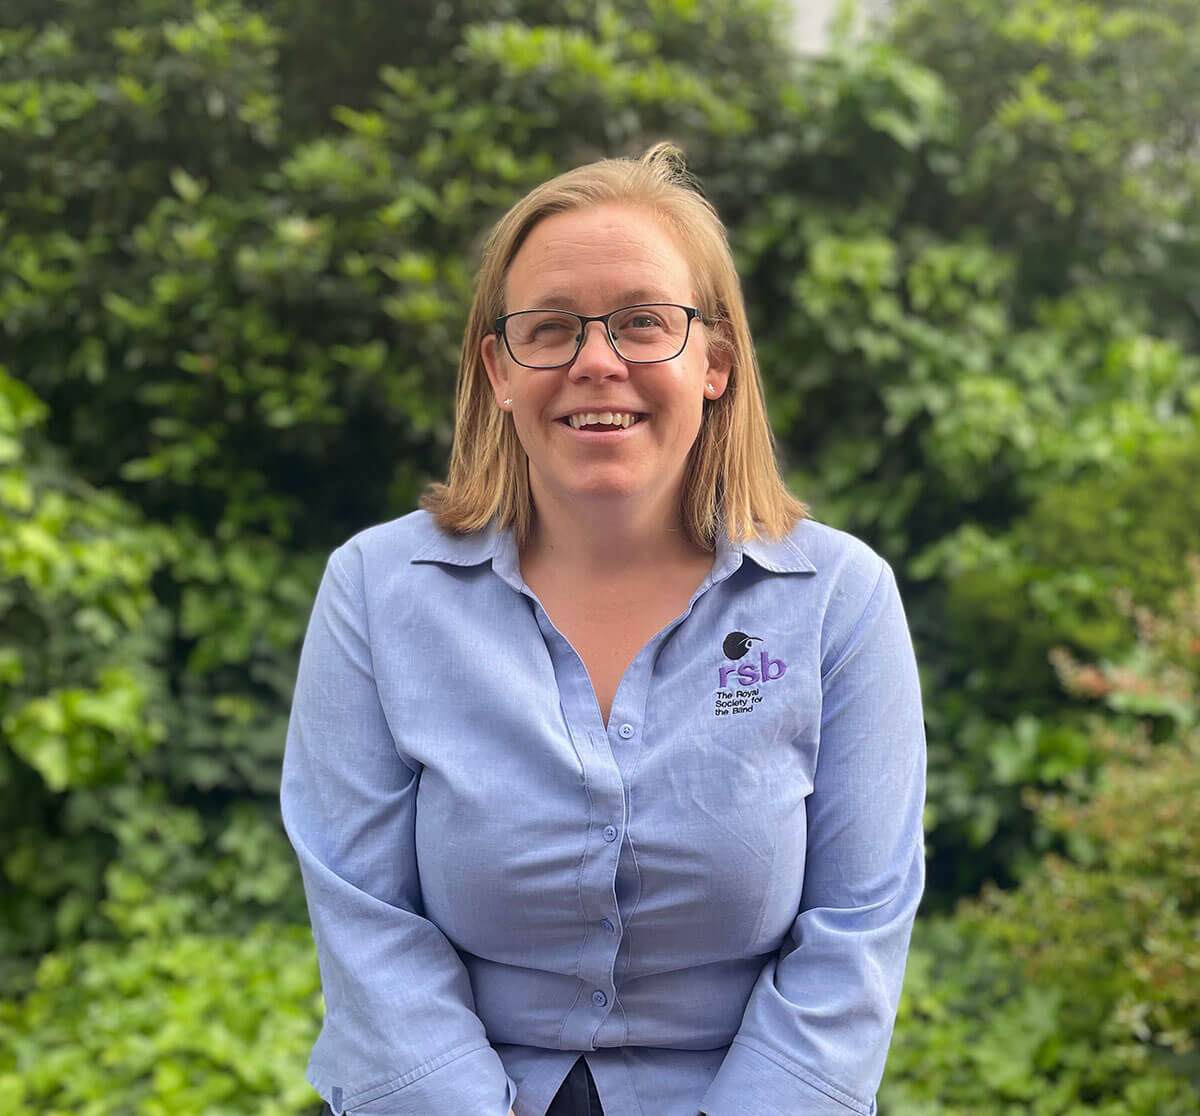 Claire - Senior Occupational Therapist/Assistive Technology Specialist